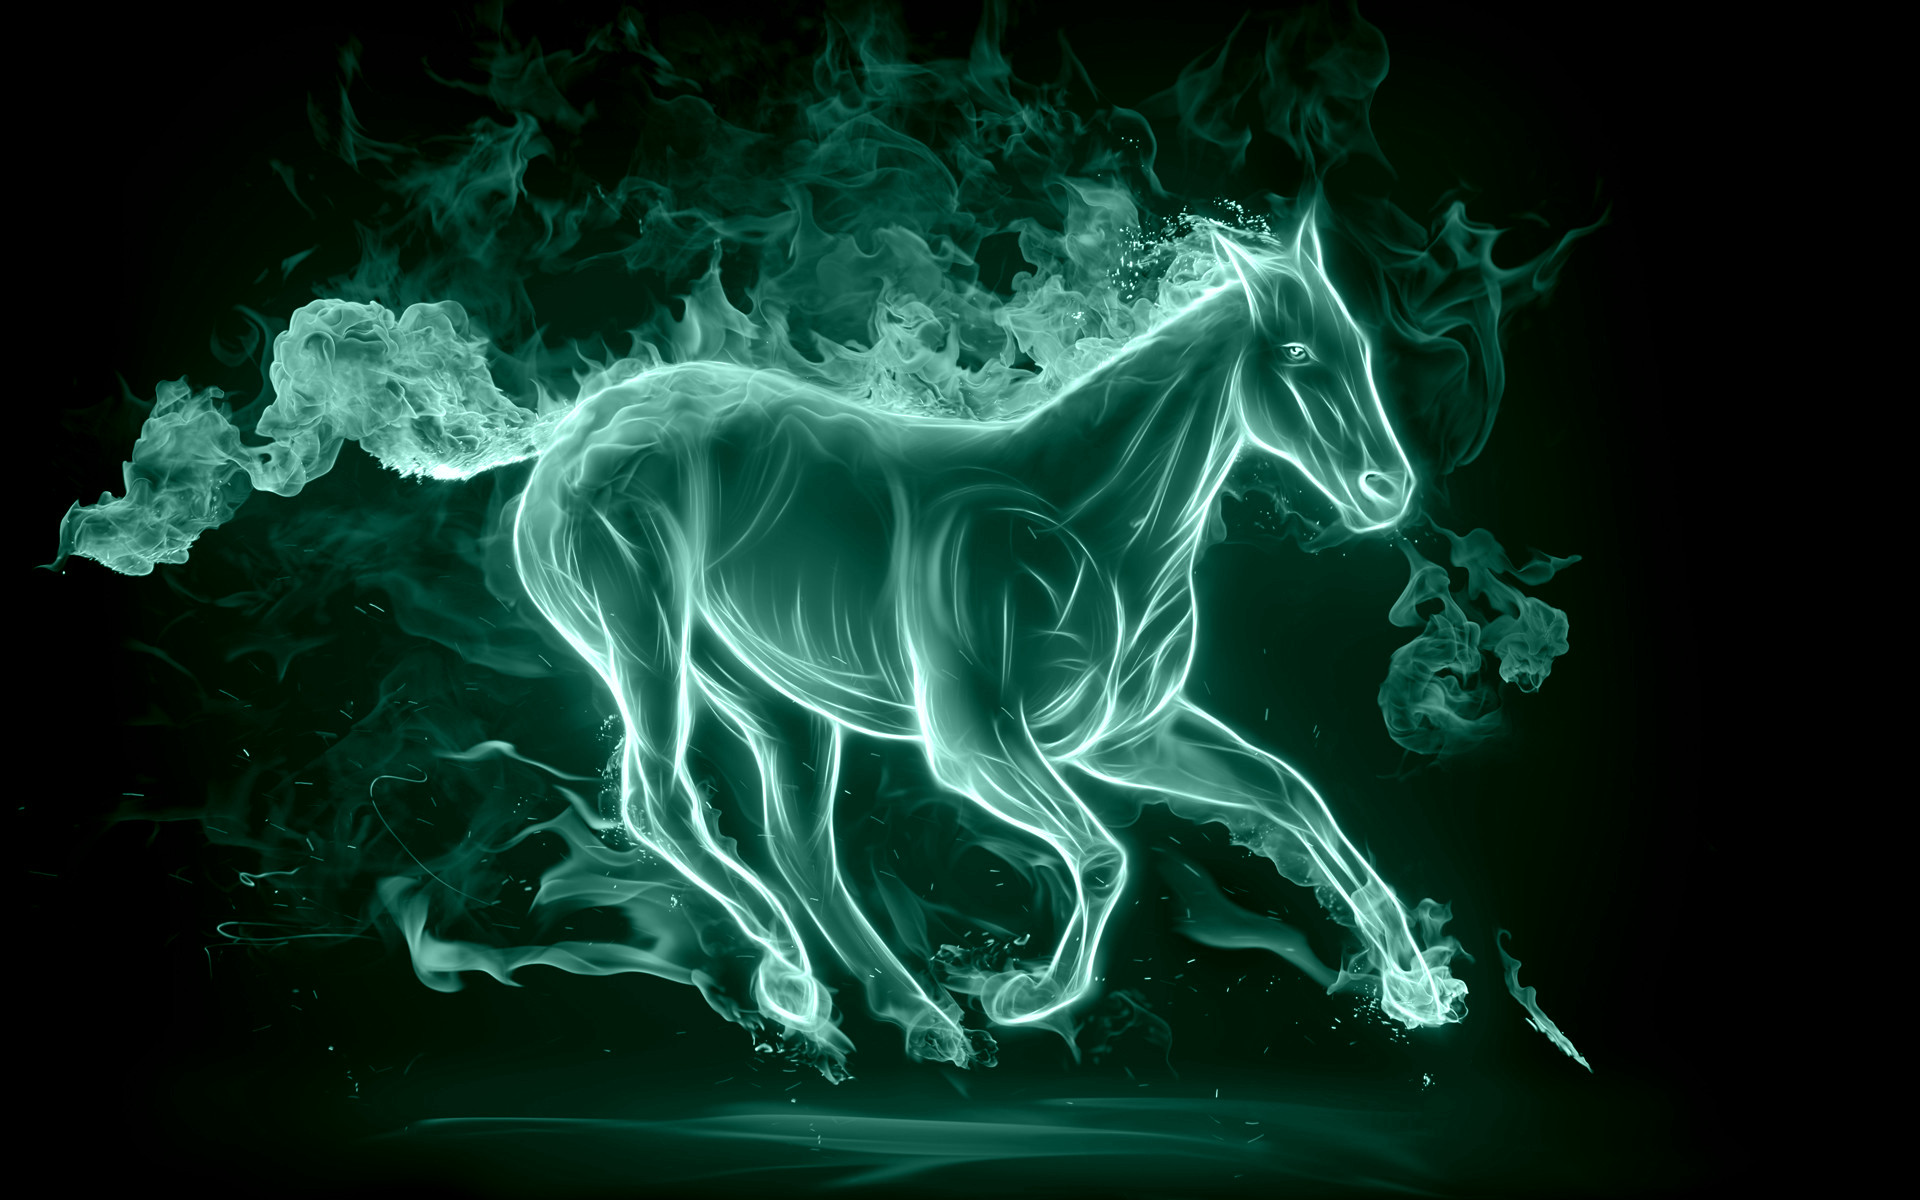 Amazing Wallpaper Horse Halloween - fiery_green_horse  Image_355749.jpg